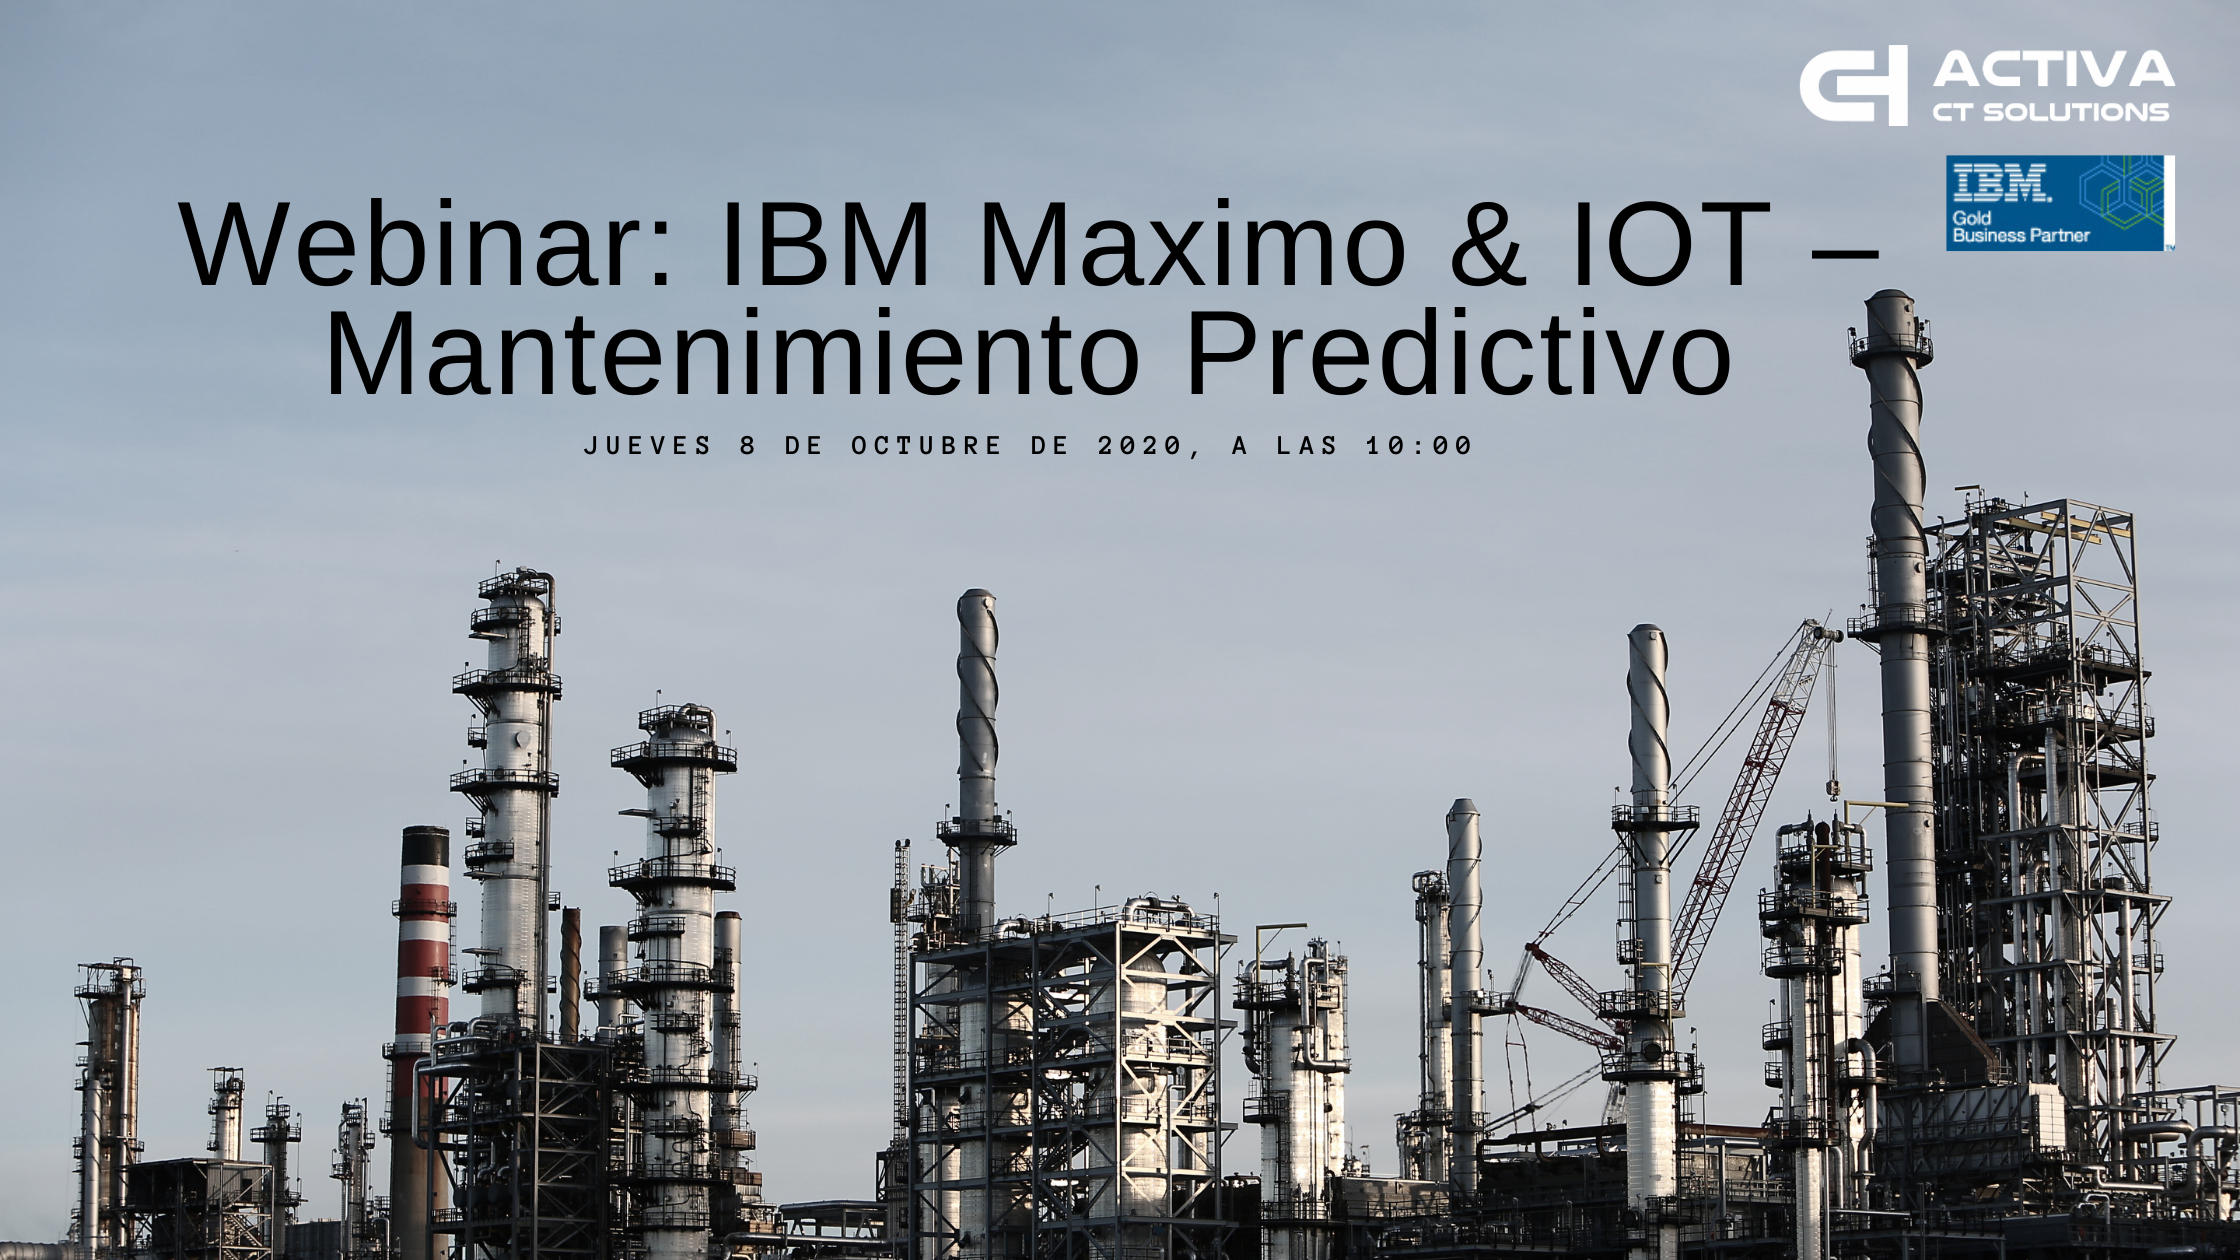 ON DEMAND Webinar: IBM Maximo & IOT – Mantenimiento Predictivo